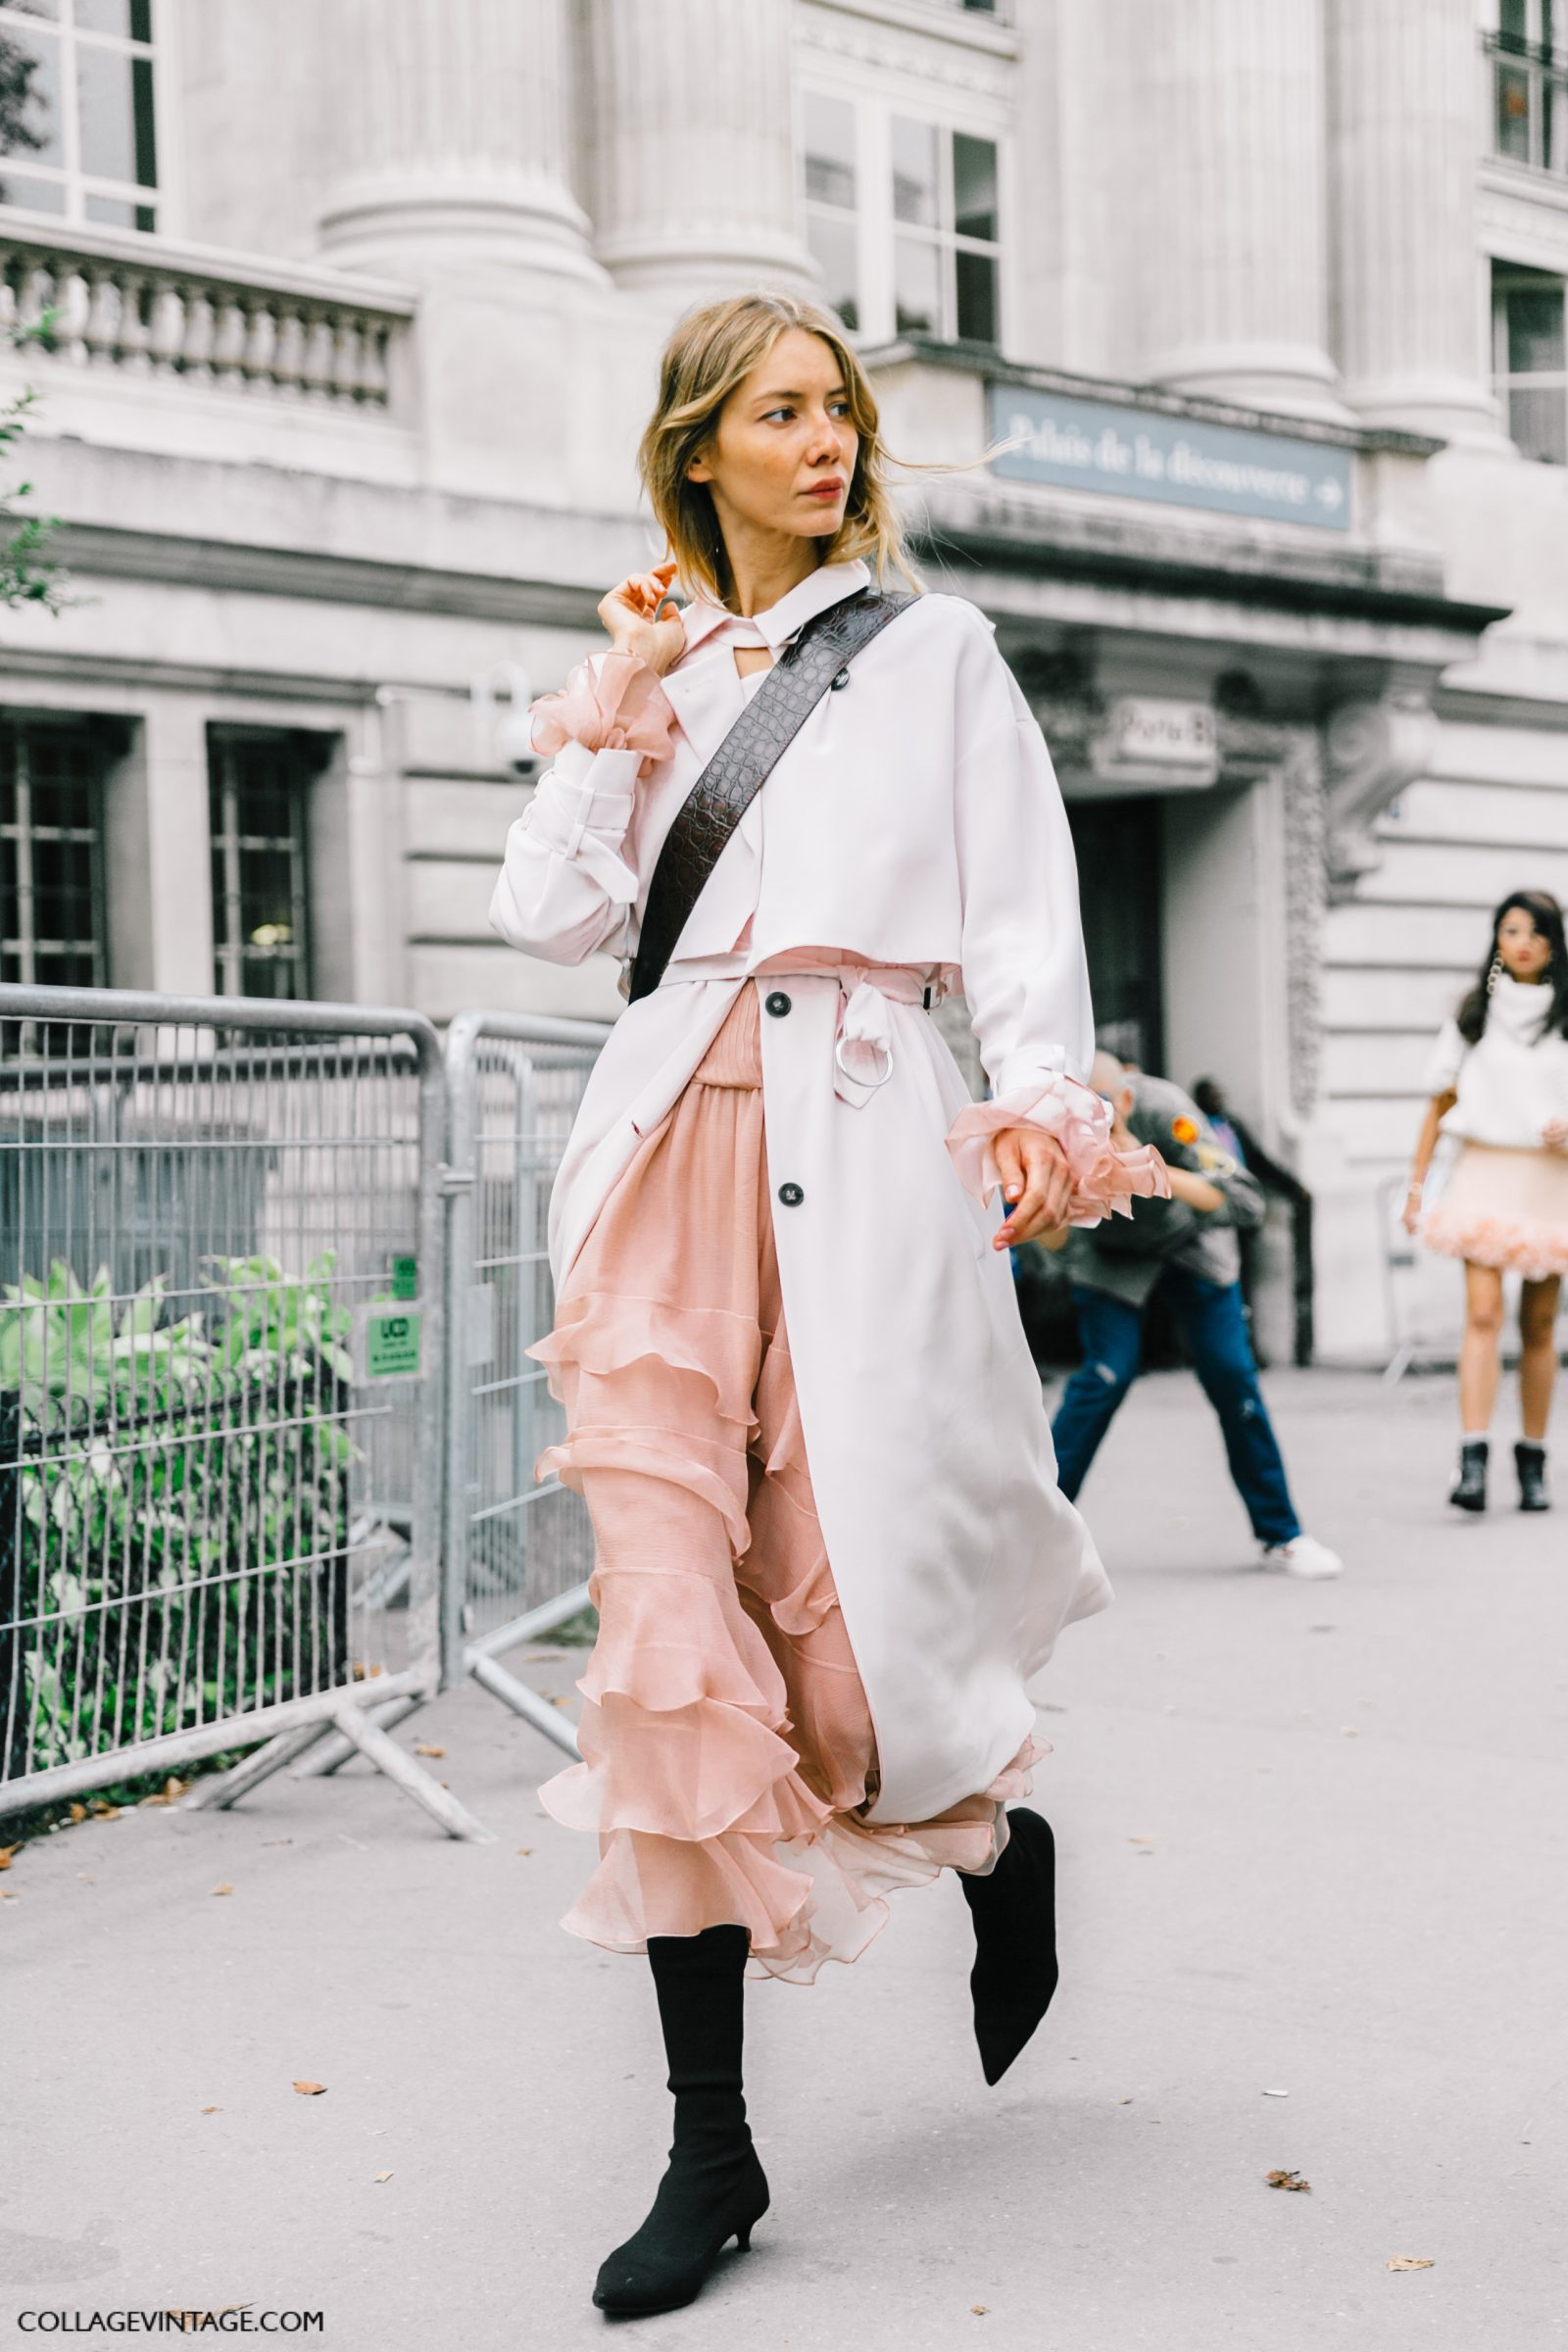 pfw-paris_fashion_week_ss17-street_style-outfits-collage_vintage-chloe-carven-balmain-barbara_bui-31